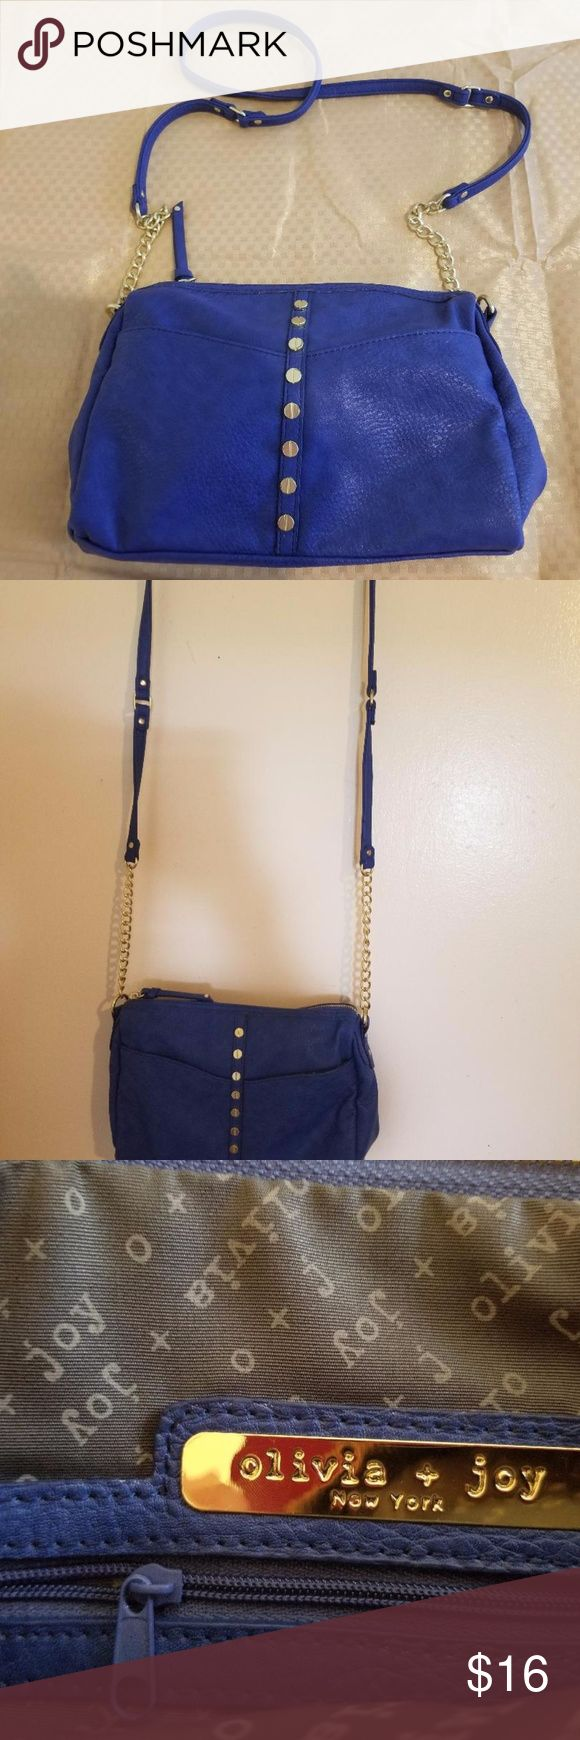 Olivia & Joy over the shoulder handbag New Royal Blue Olivia and Joy handbag with gold accents. Very elegant and chic, soft PVC.  Brand new, unworn, unused. Please see pictures for measurements. Olivia + Joy Bags Shoulder Bags